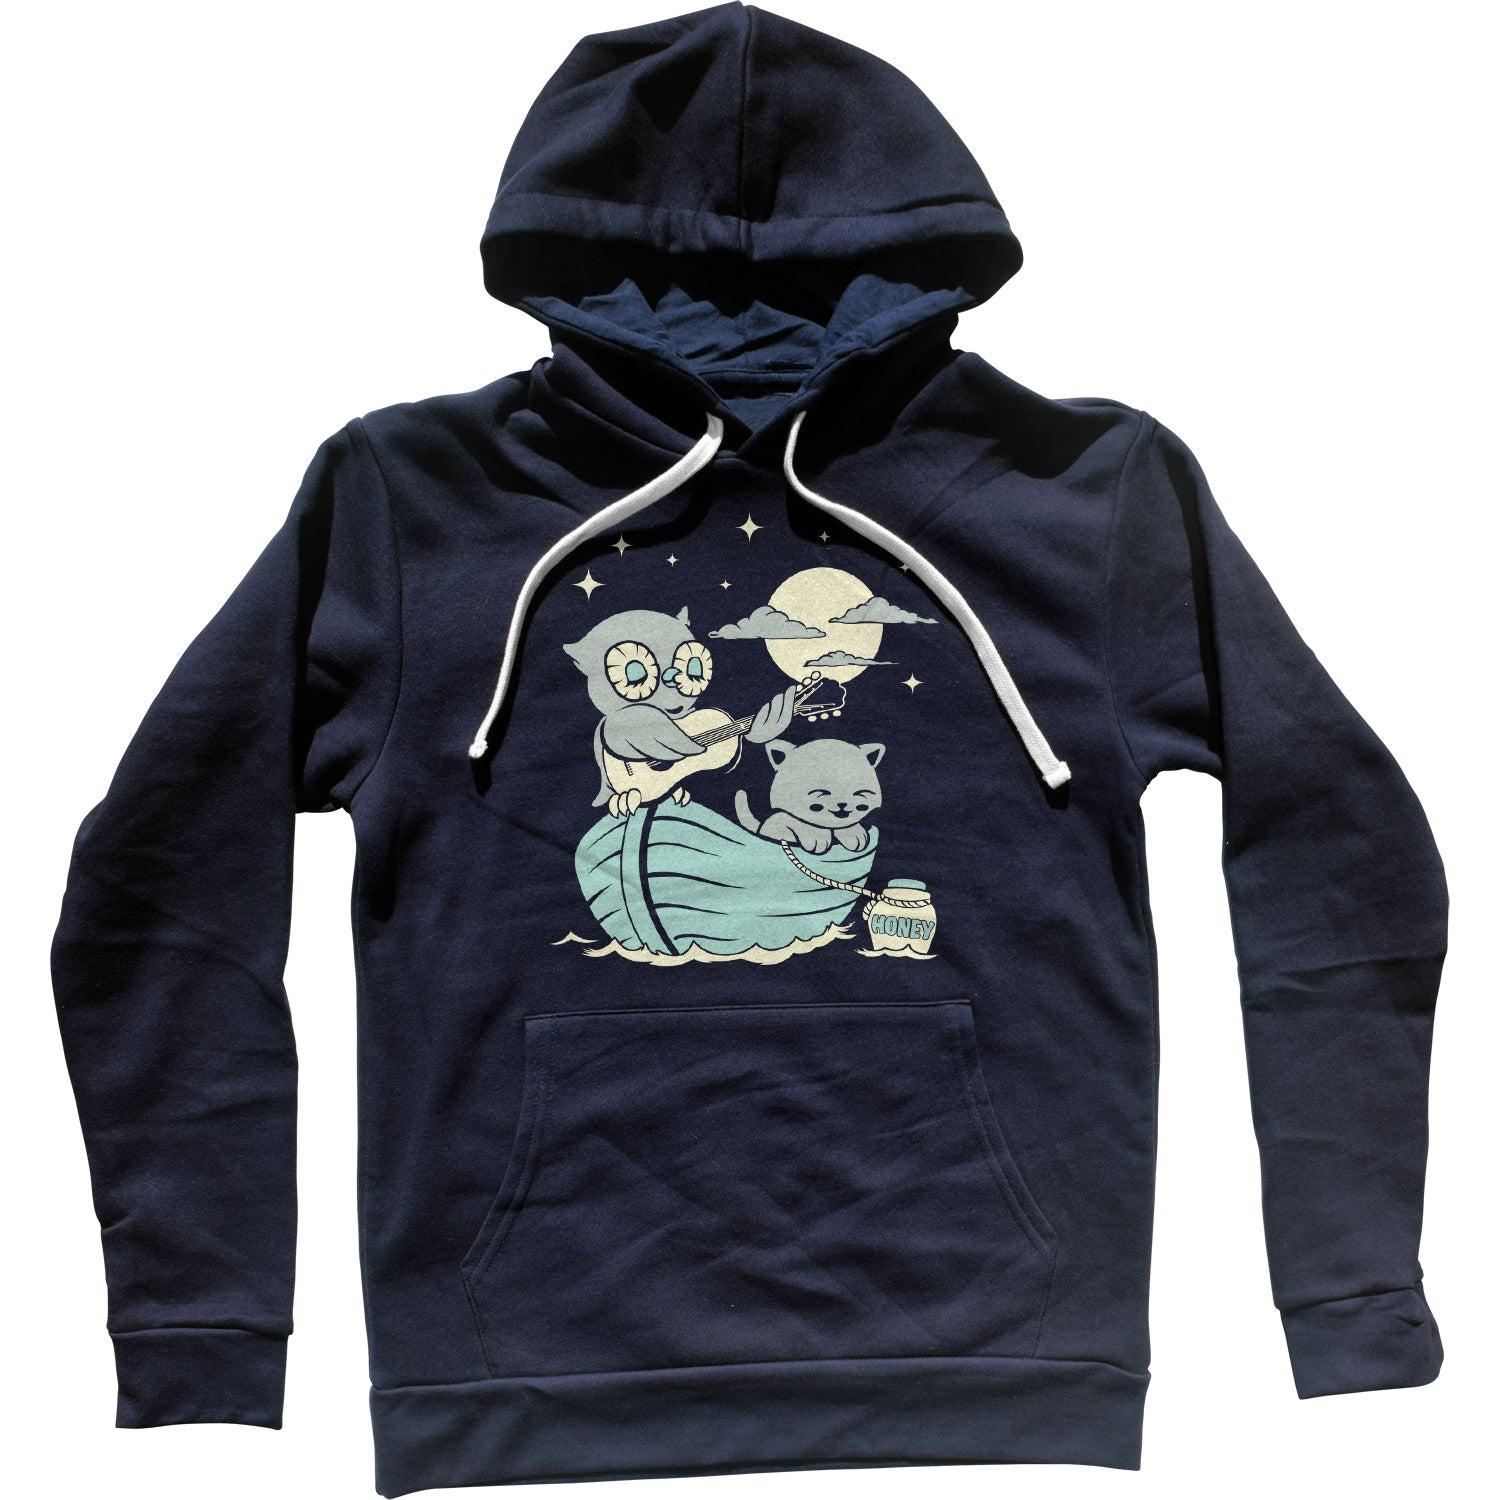 The Owl And the Pussycat Unisex Hoodie